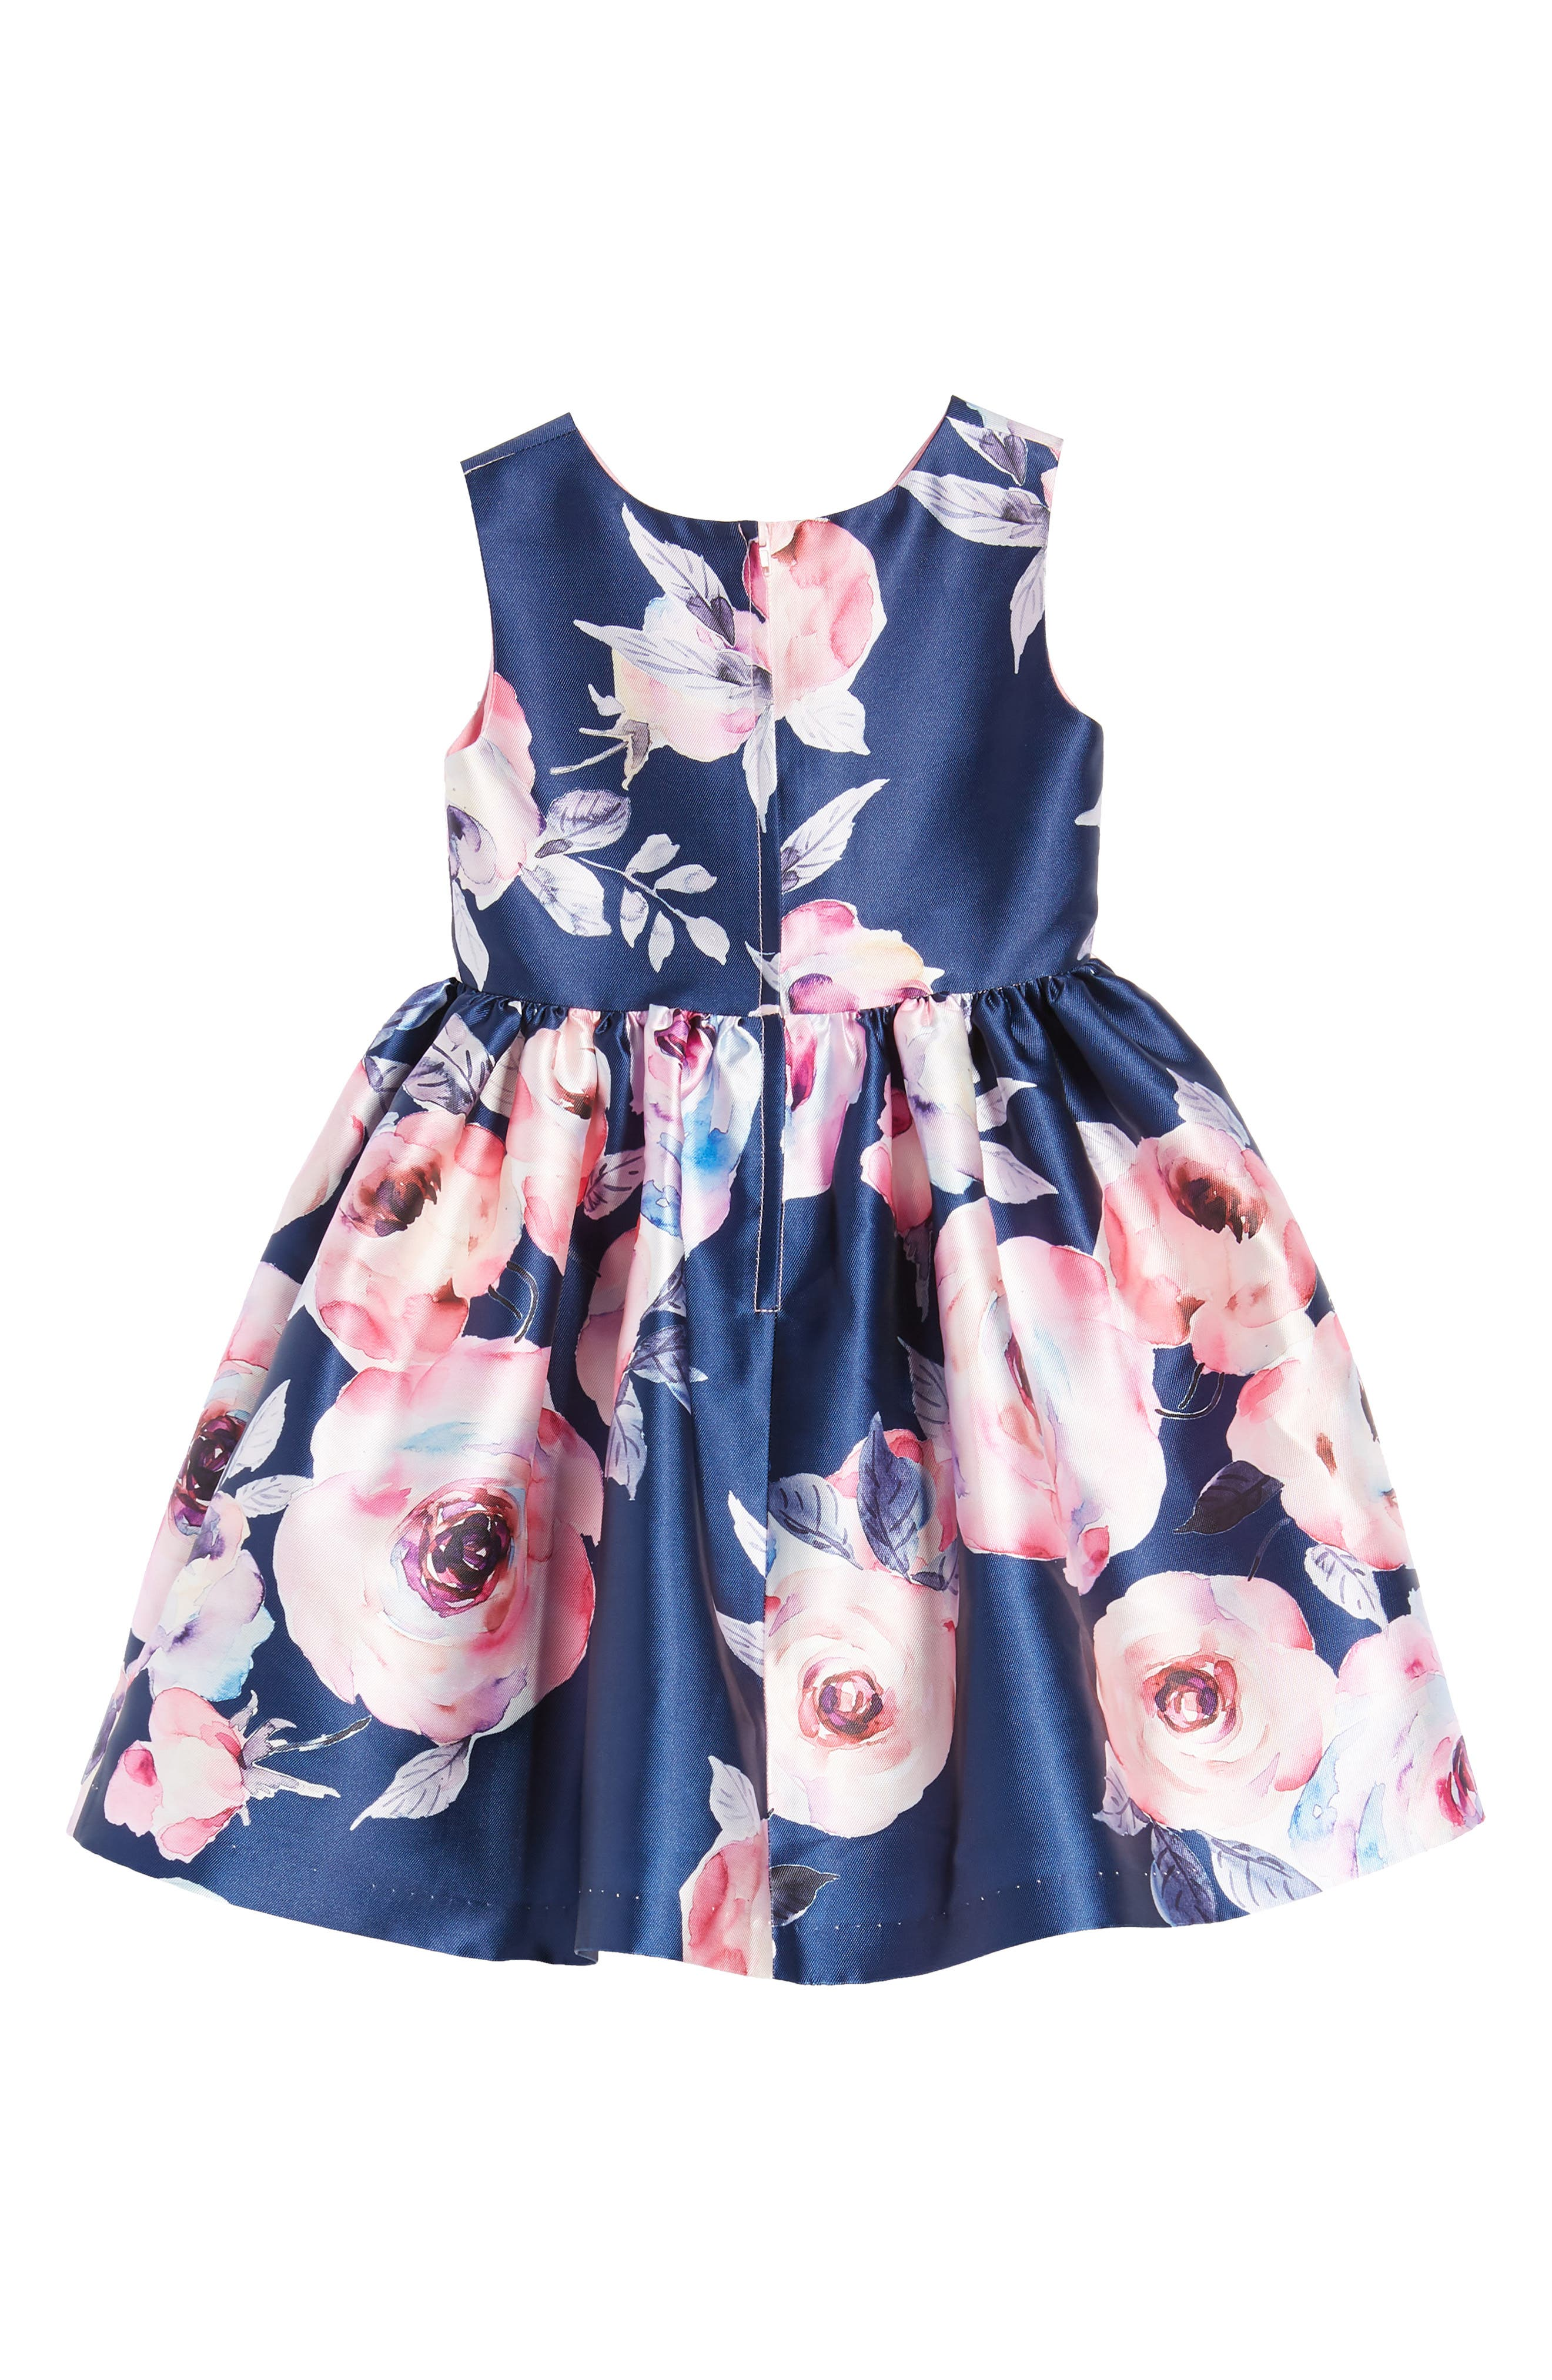 Floral Party Dress,                             Alternate thumbnail 3, color,                             Navy/ Pink